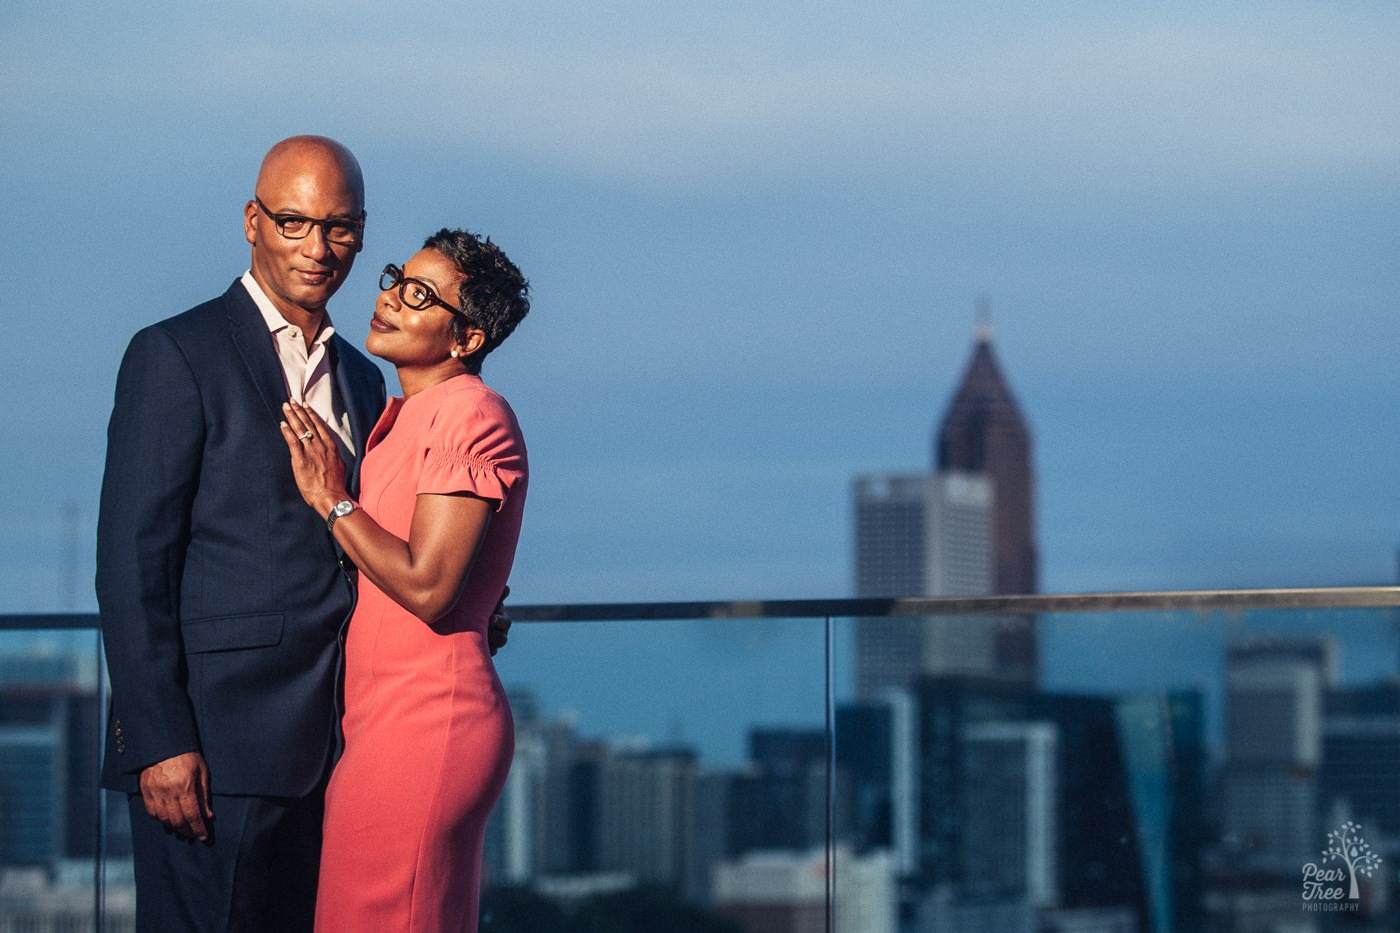 Power shot of engaged couple in Atlanta skyline from 18th floor balcony in midtown.